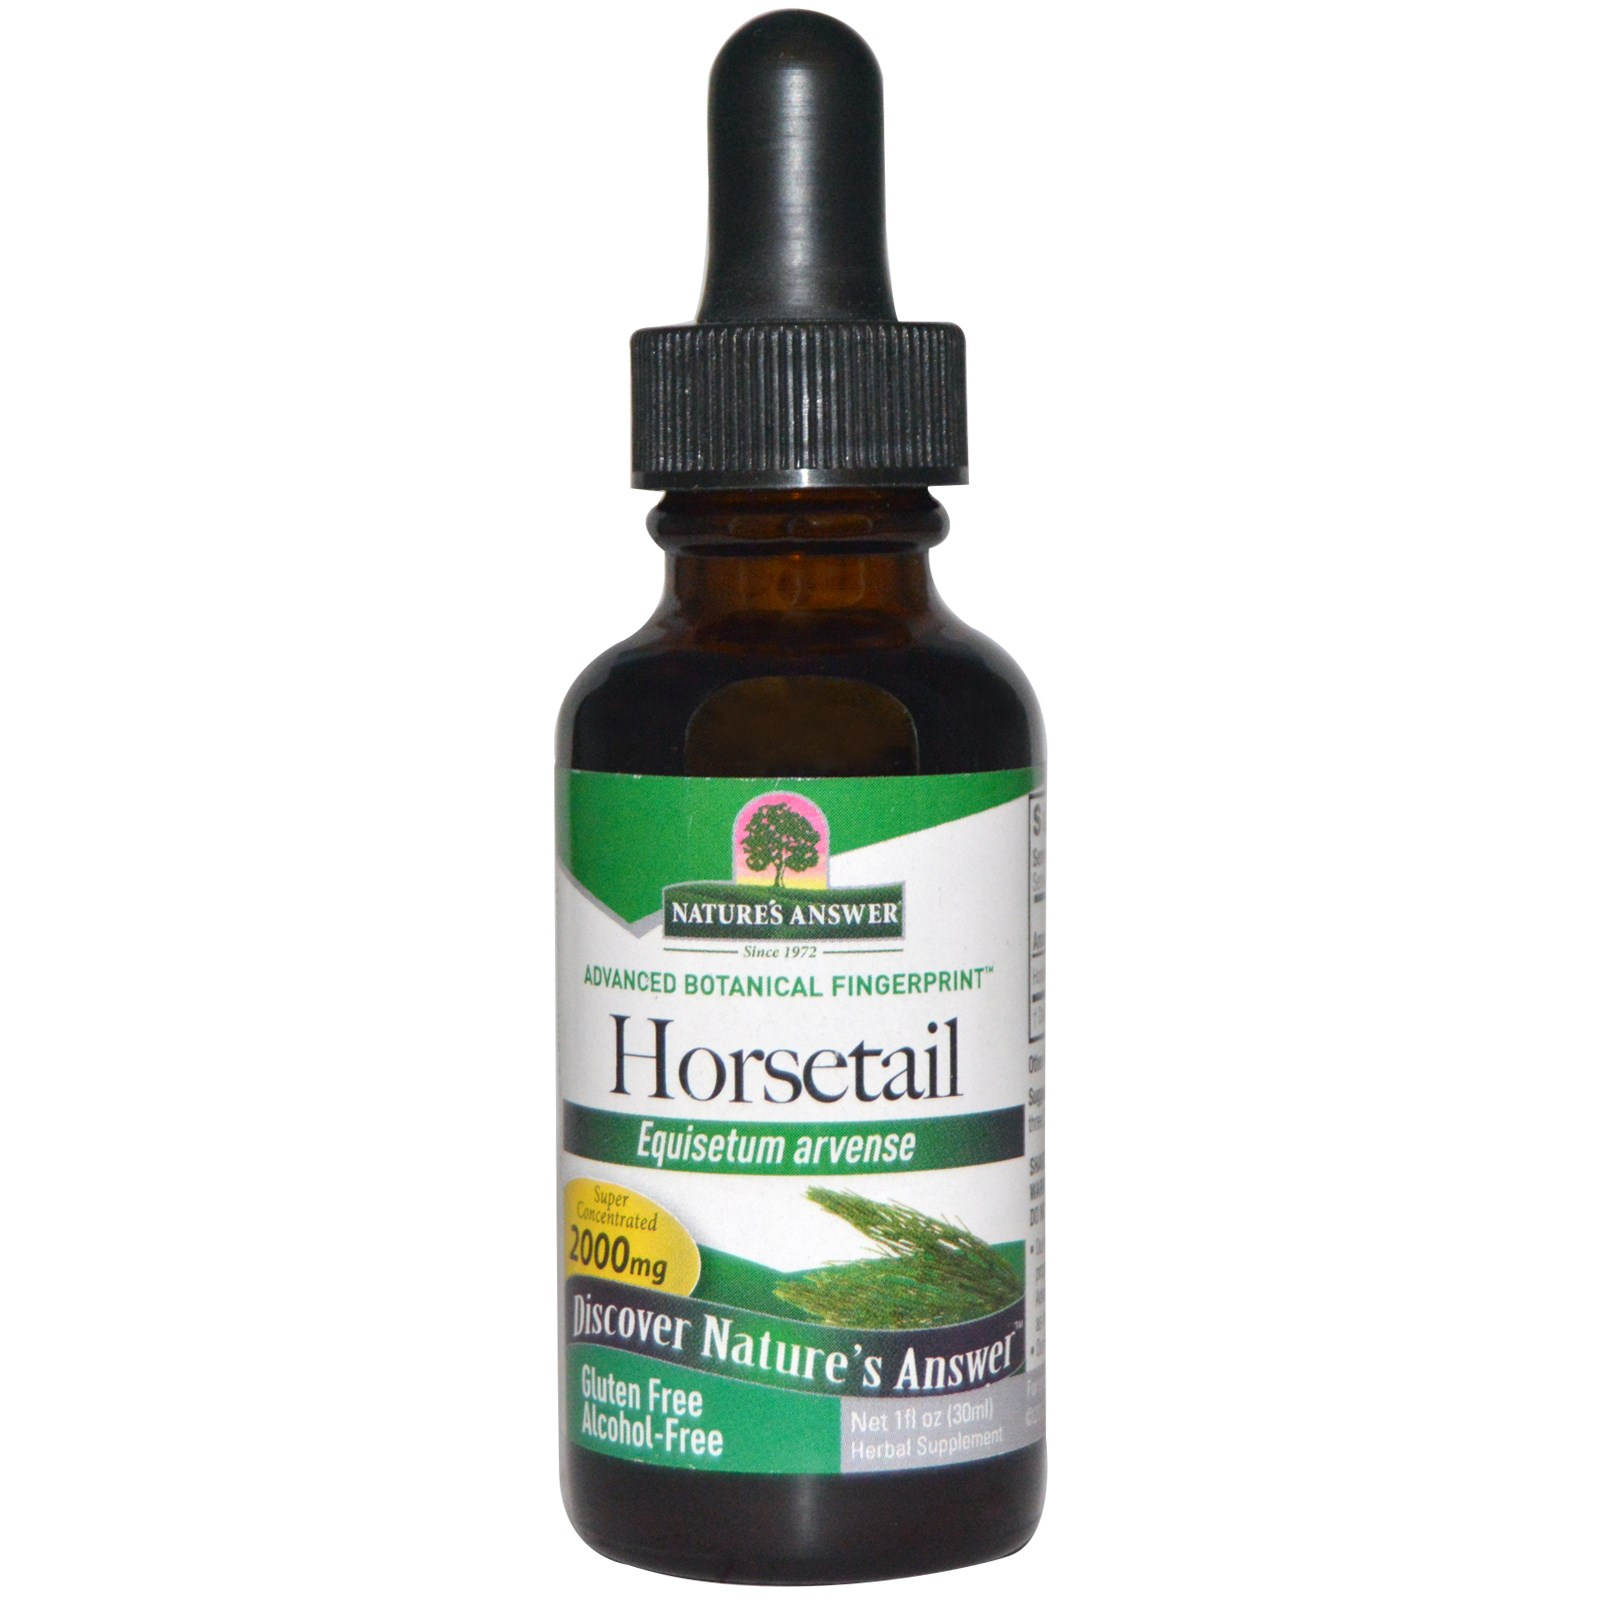 Image of Horsetail, Alcohol-Free, 2000 mg (30 ml) - Nature's Answer 0083000006371